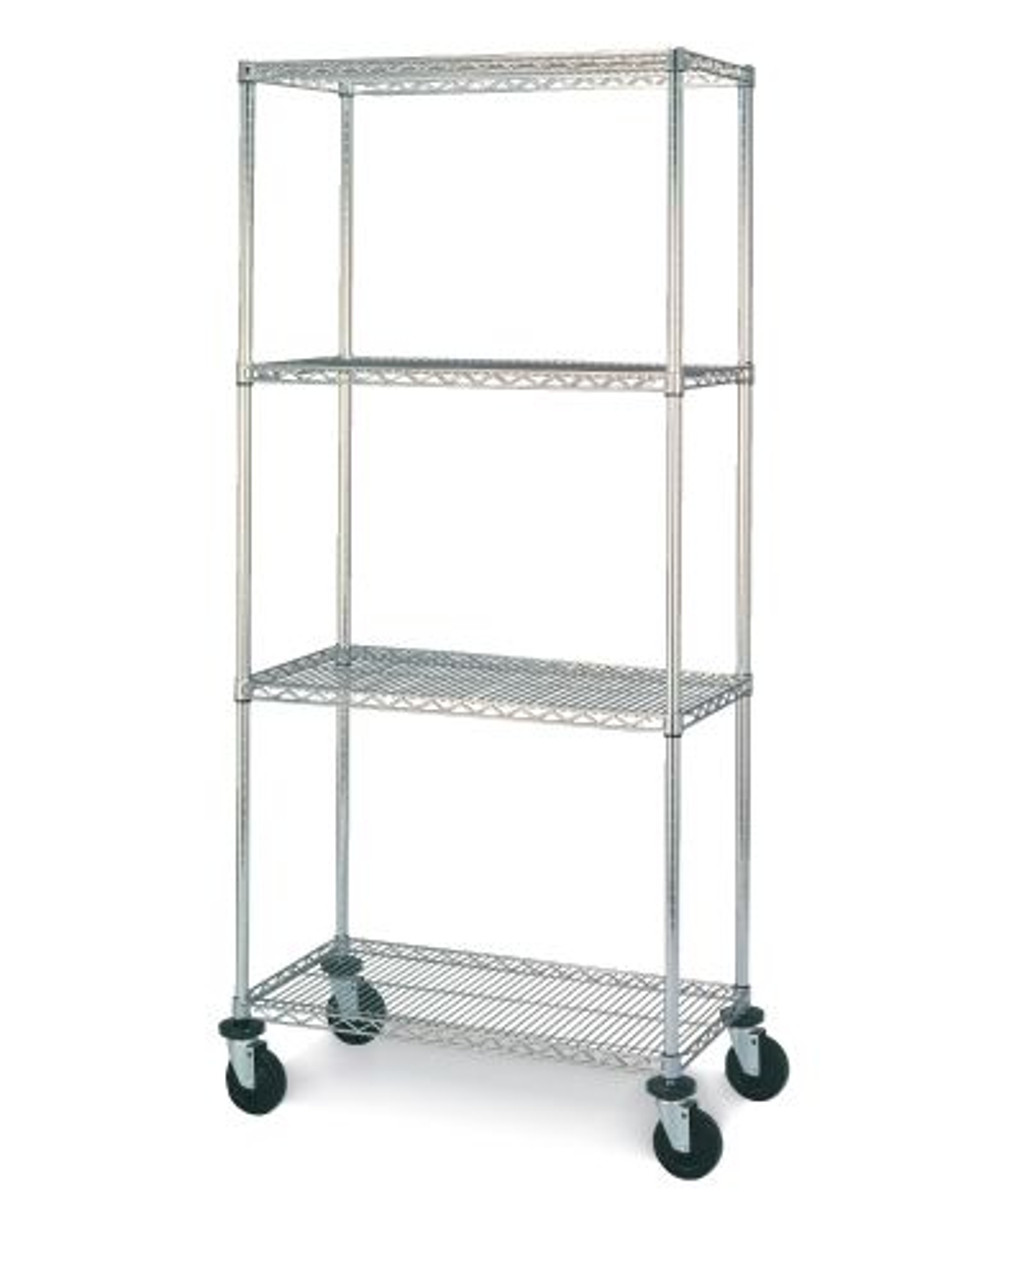 "Olympic 24"" Deep 4 Shelf Mobile Carts - Chrome - 24"" x 60"" x 59"" MJ2460-54UC"